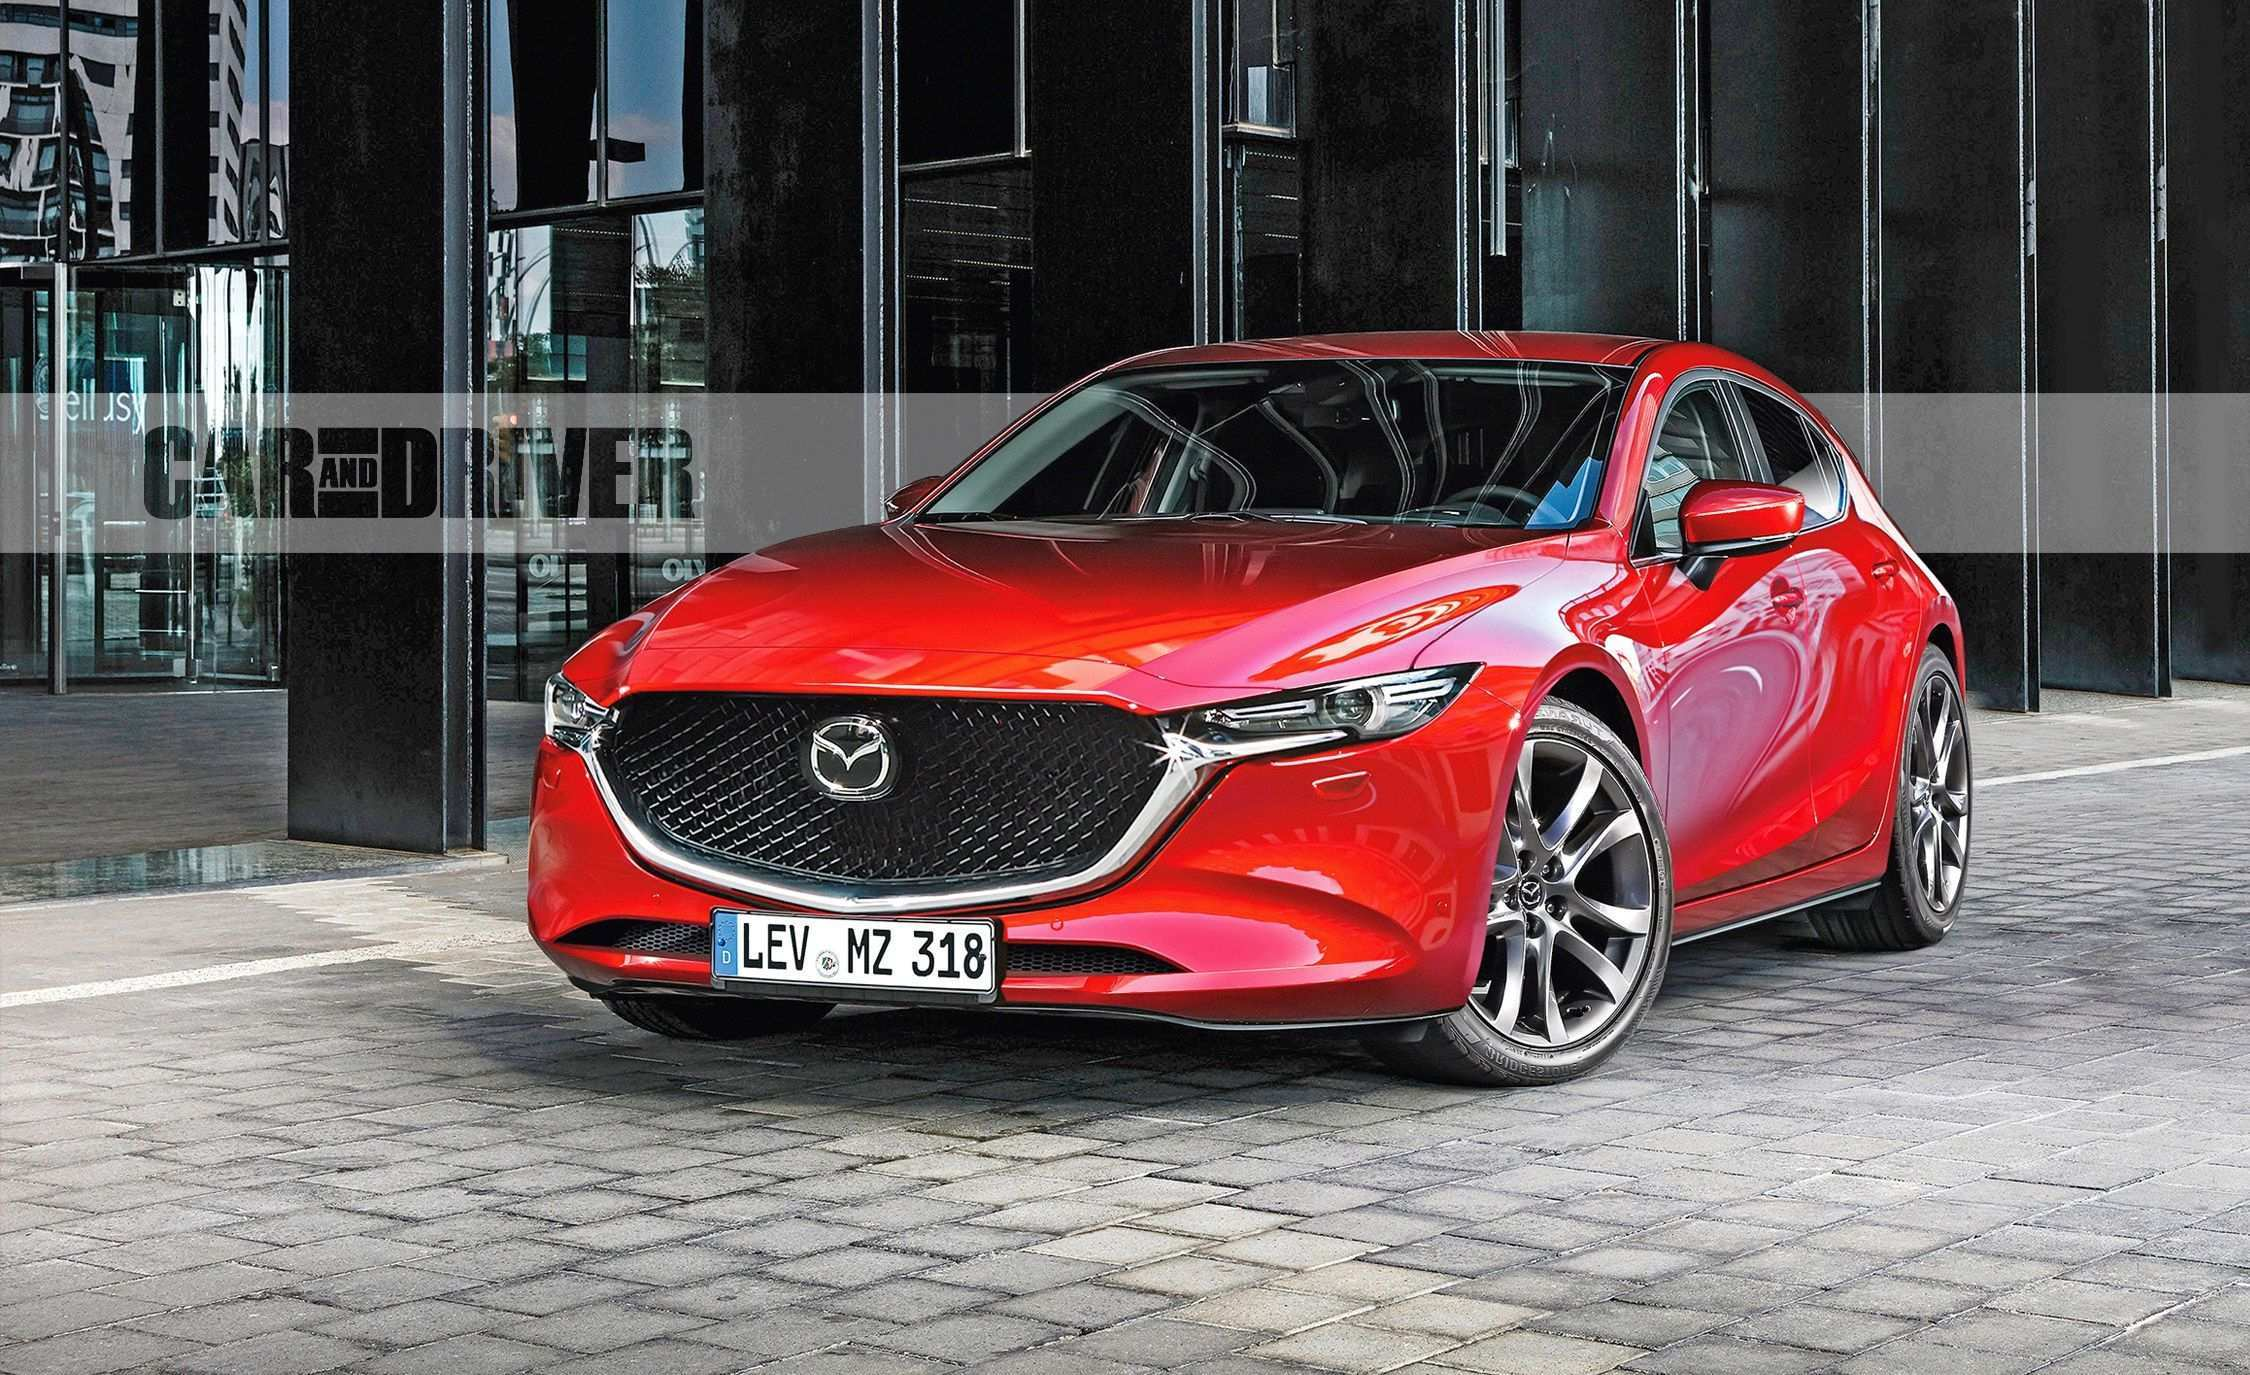 79 All New New Mazda Exterior 2020 New Concept by New Mazda Exterior 2020